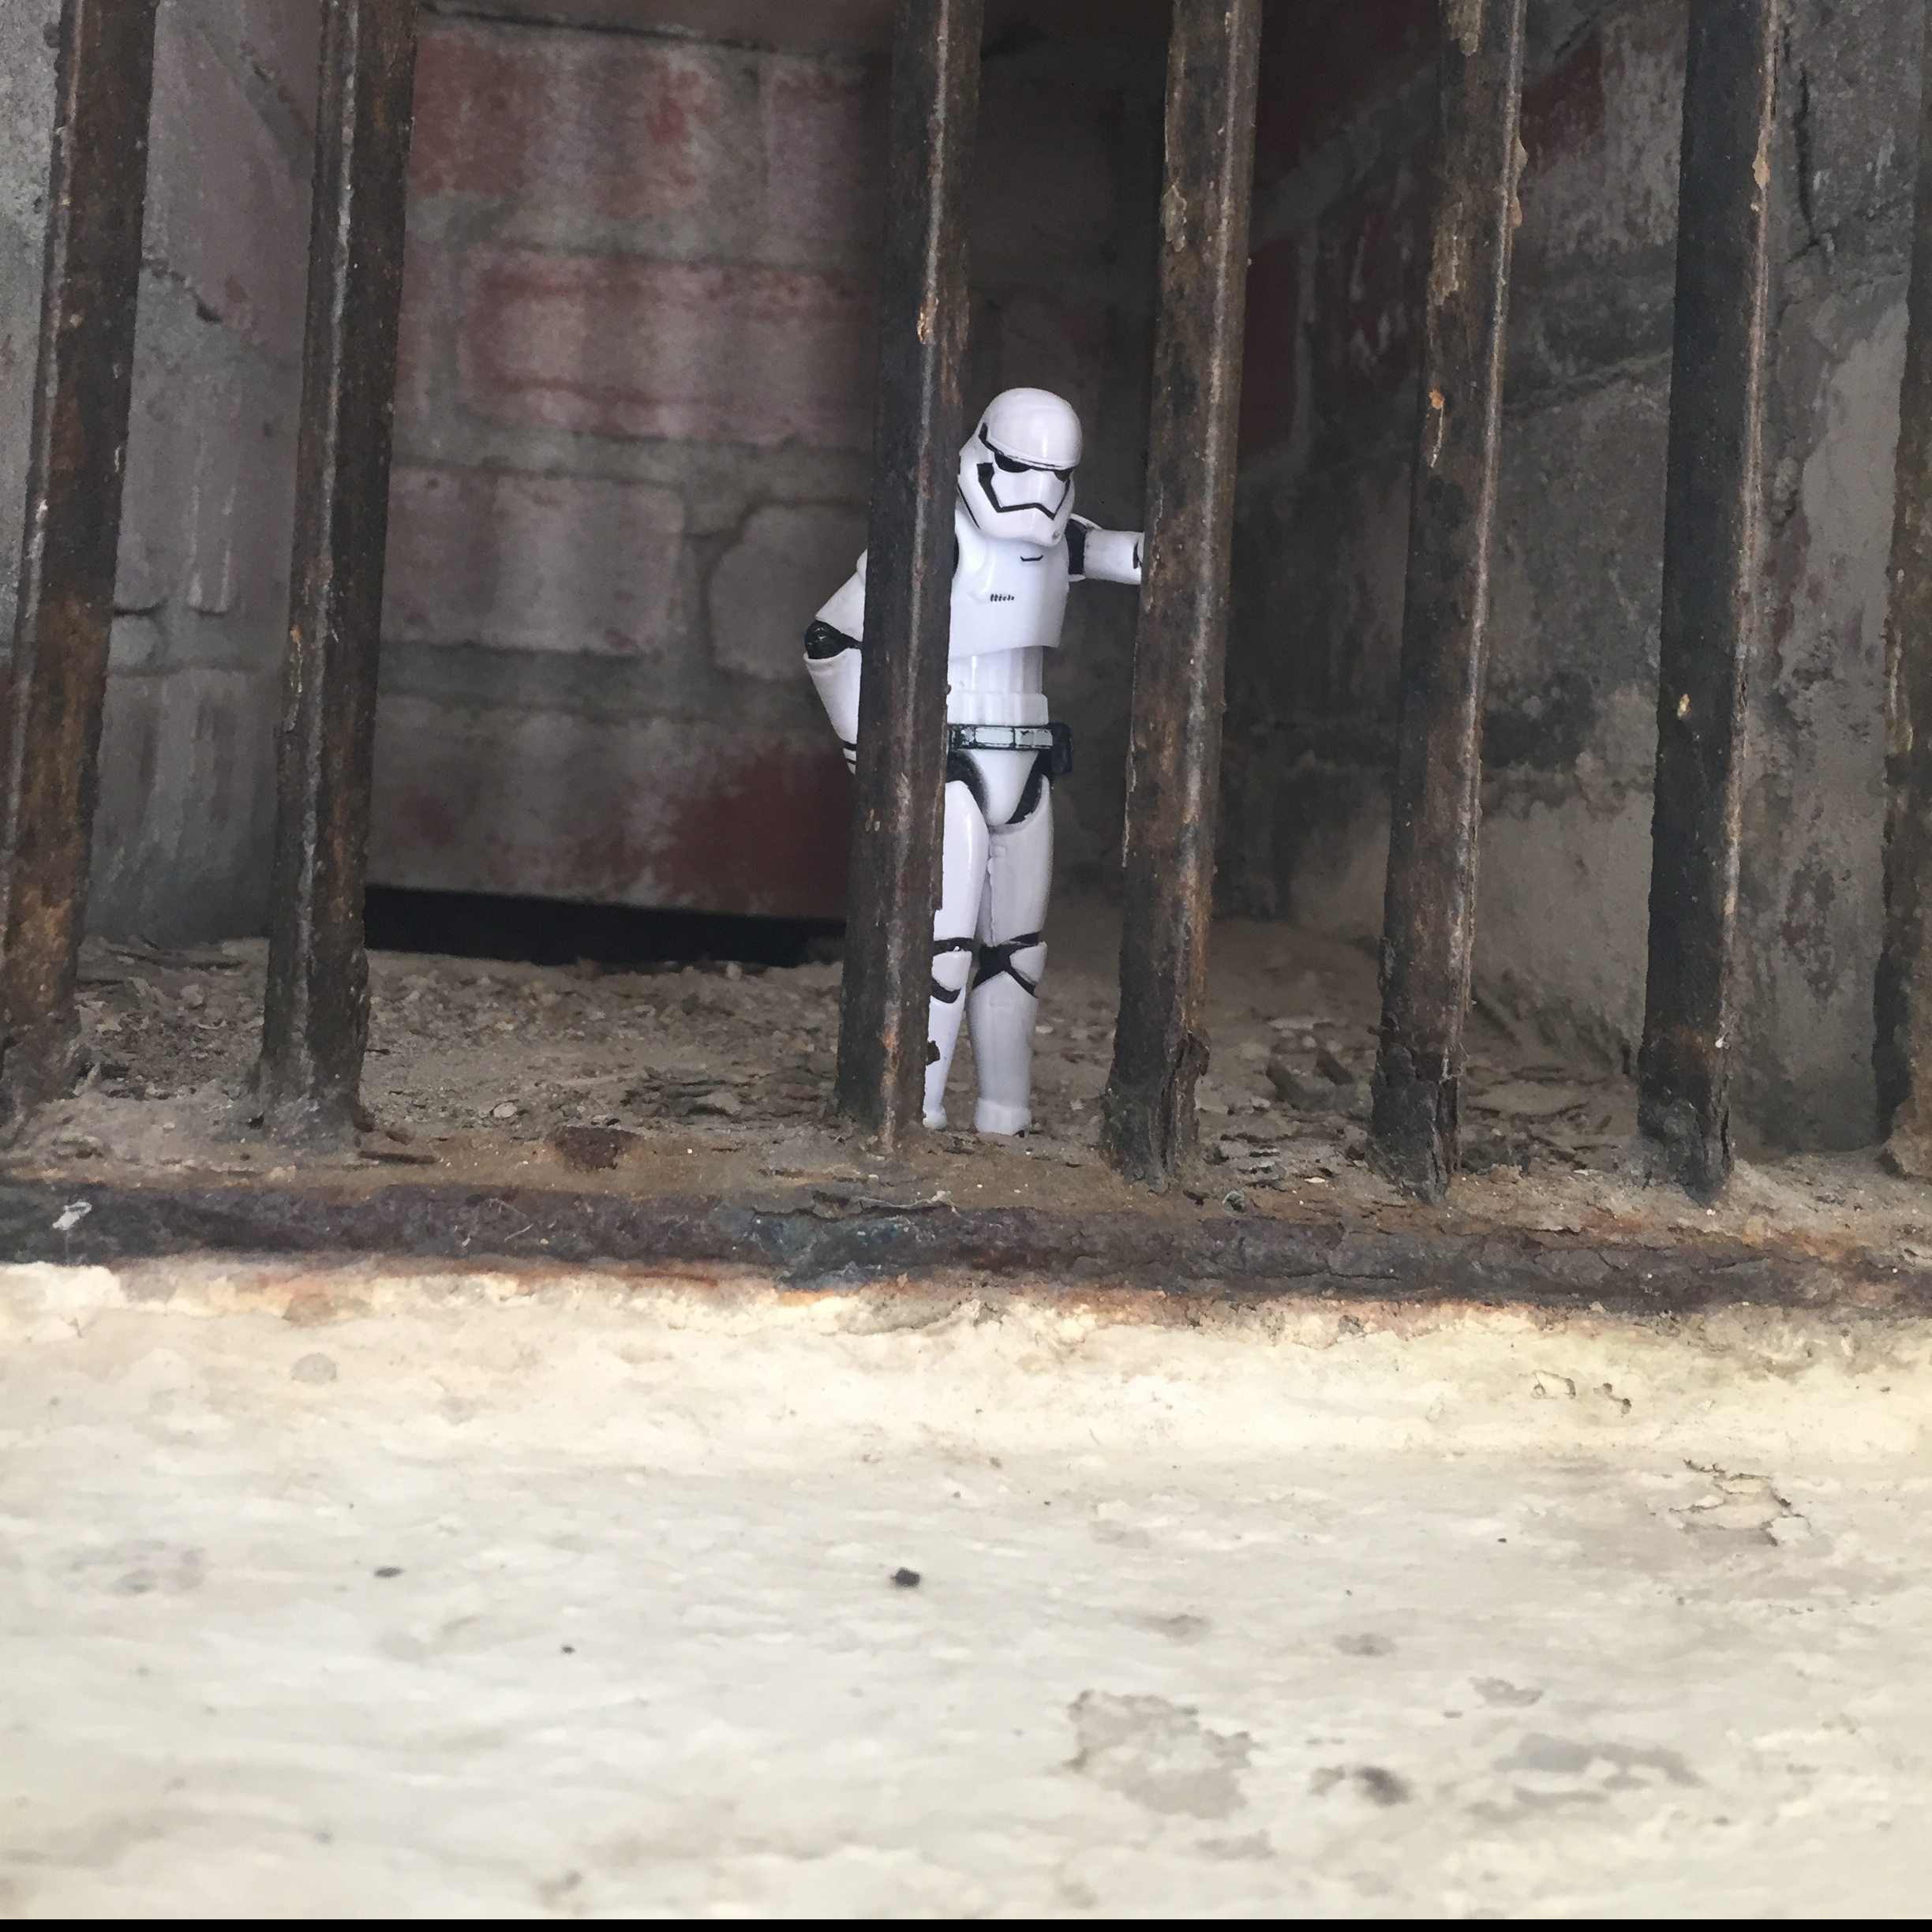 stormtrooper bars summer opp brookdale gardens